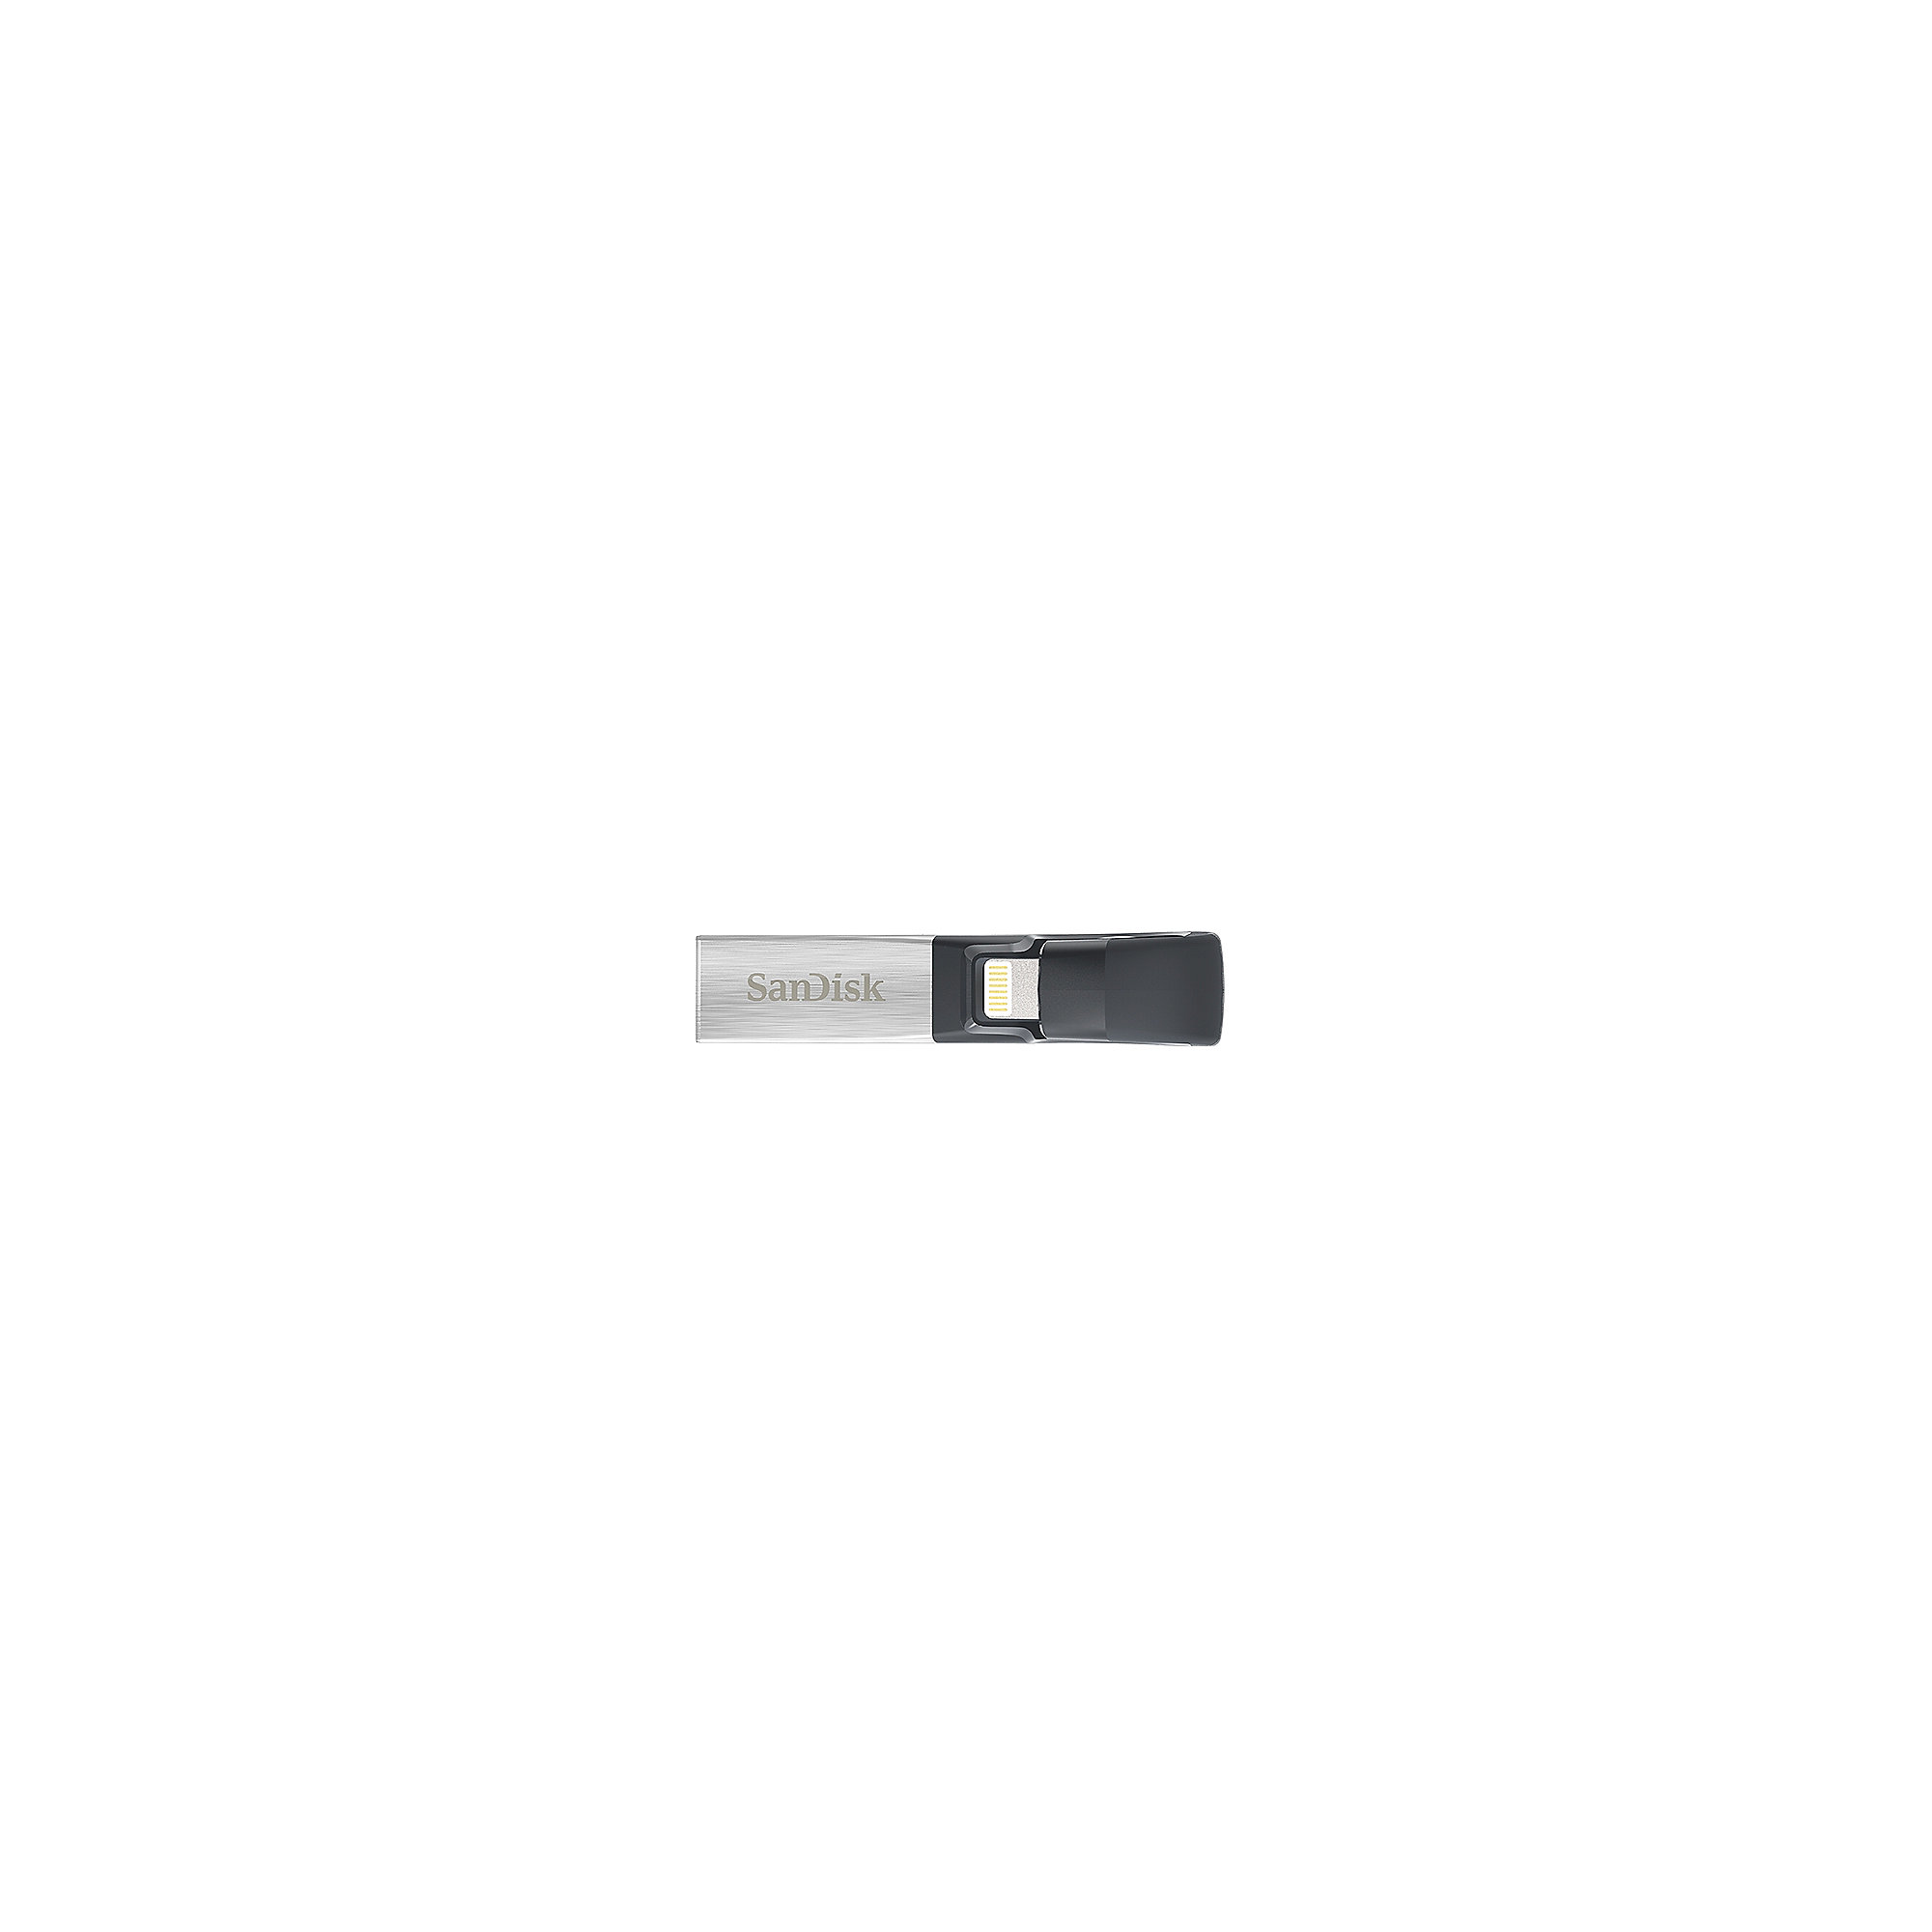 SanDisk iXpand 16GB V2 USB 3.0 Stick